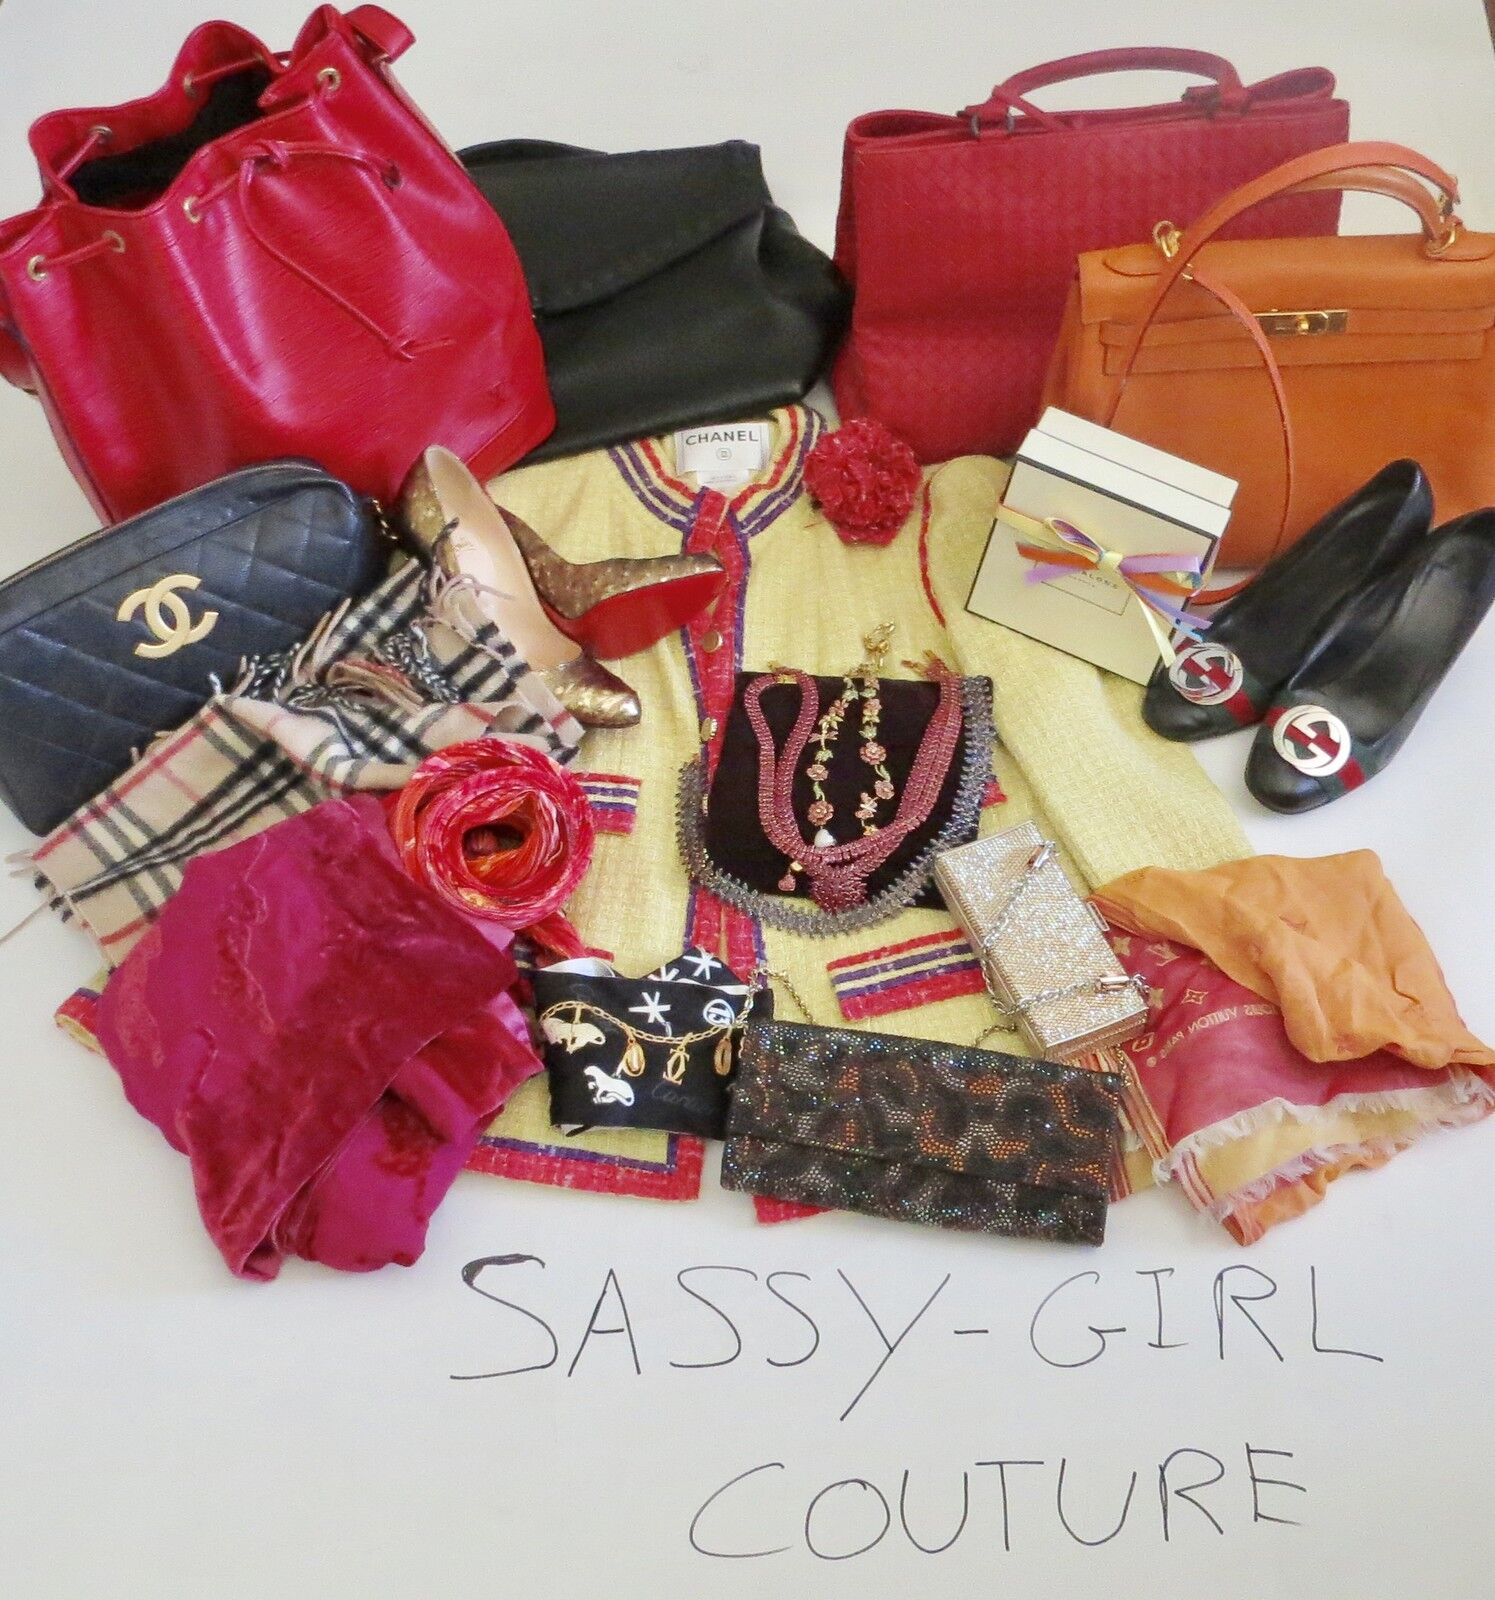 sassy-girl-couture